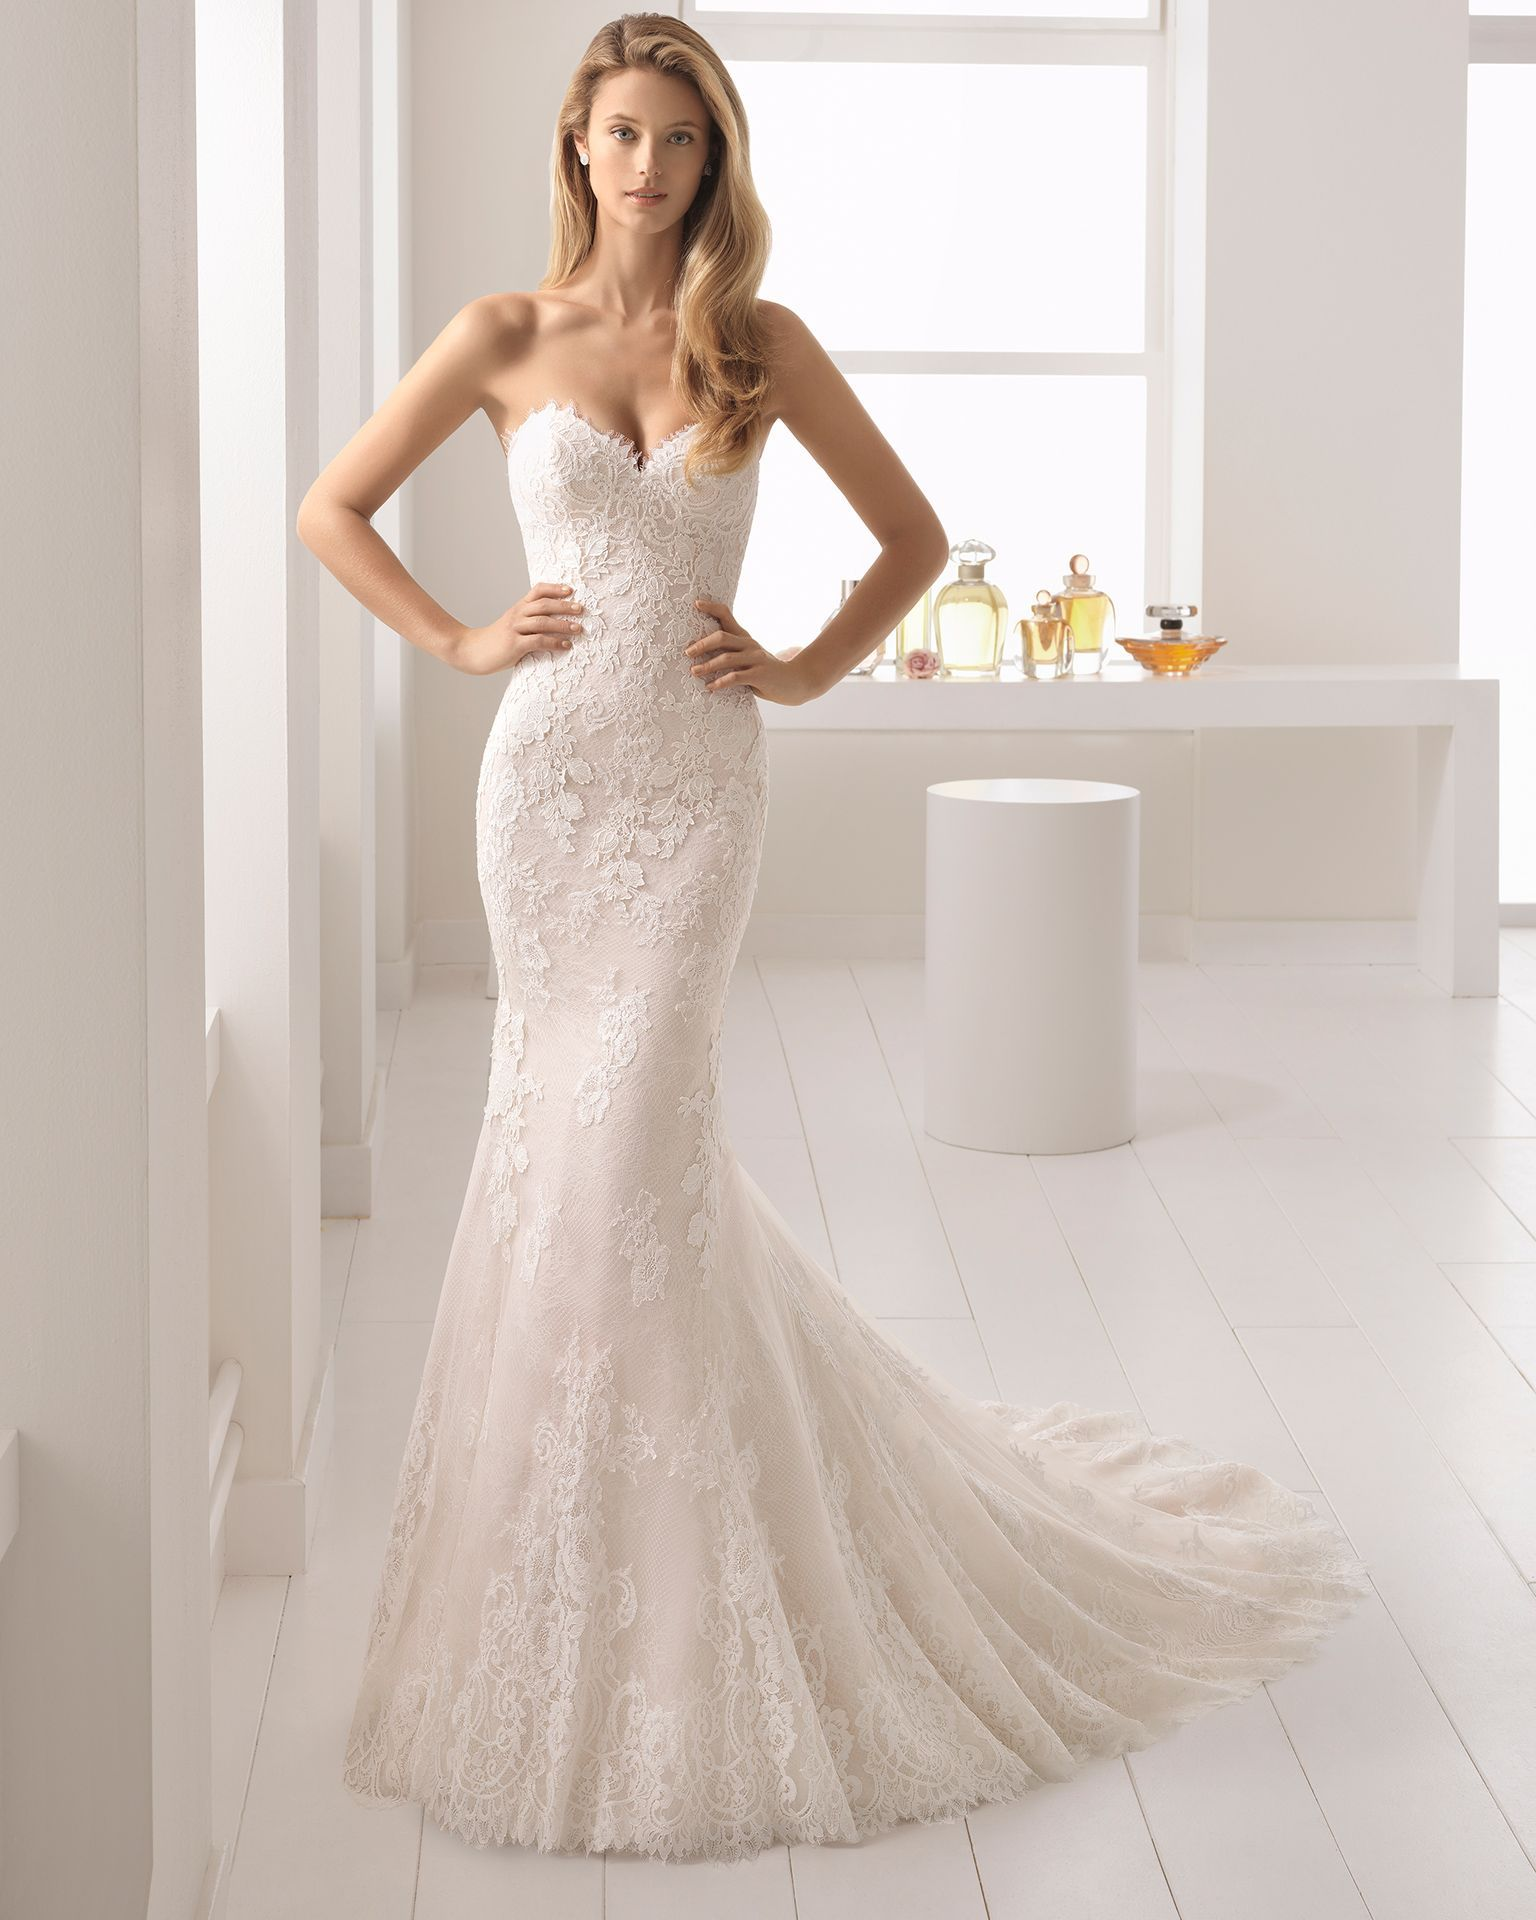 Mermaidstyle lace and guipure lace wedding dress with sweetheart